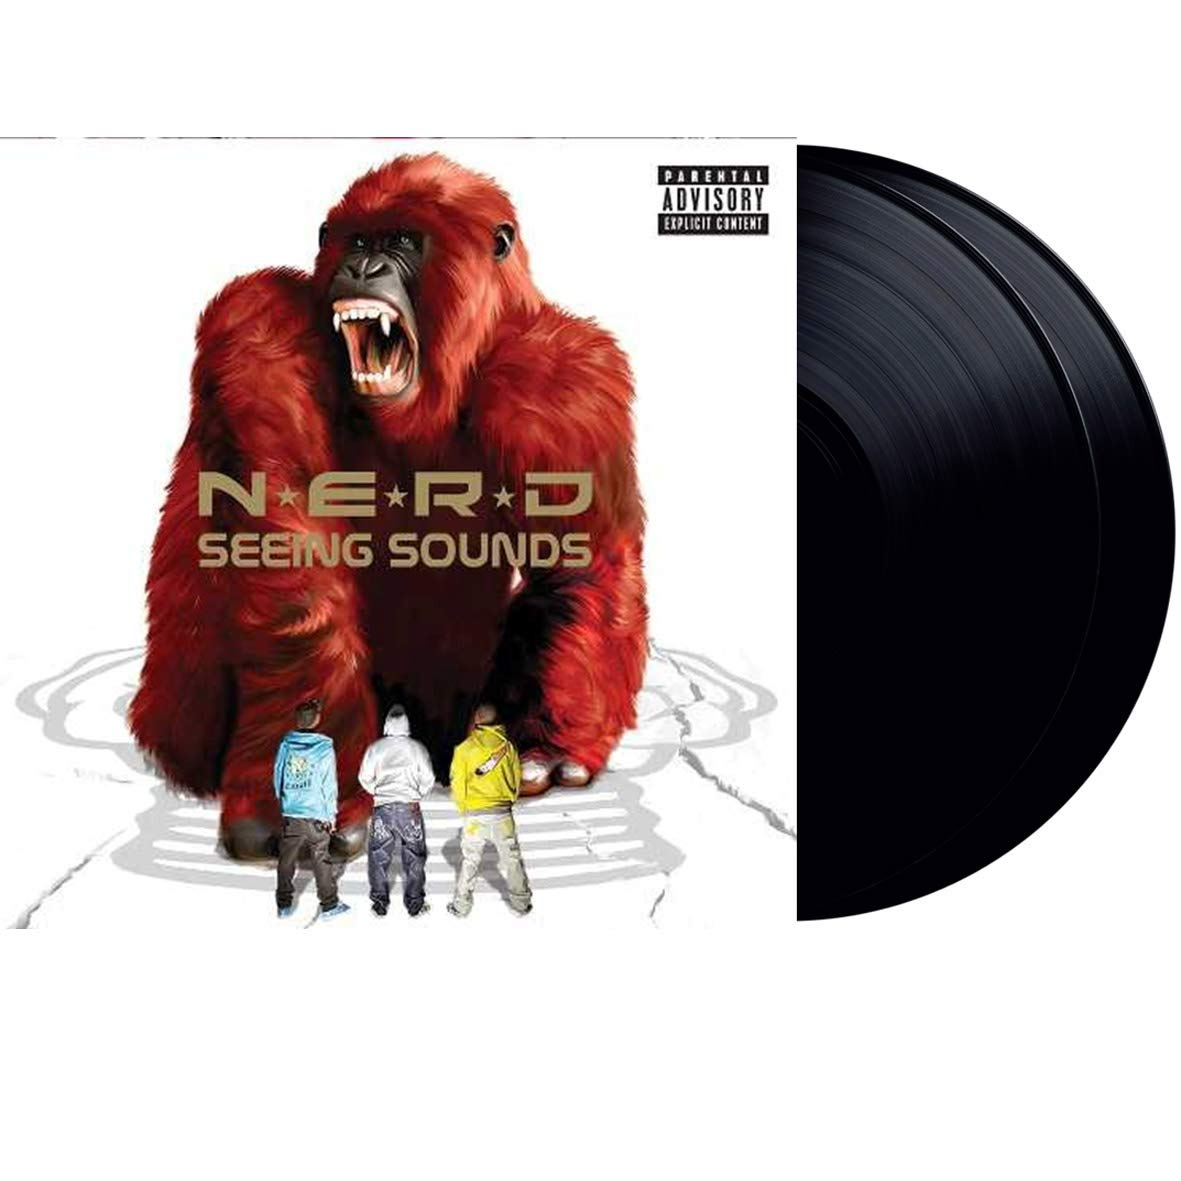 CD Shop - N.E.R.D SEEING SOUNDS